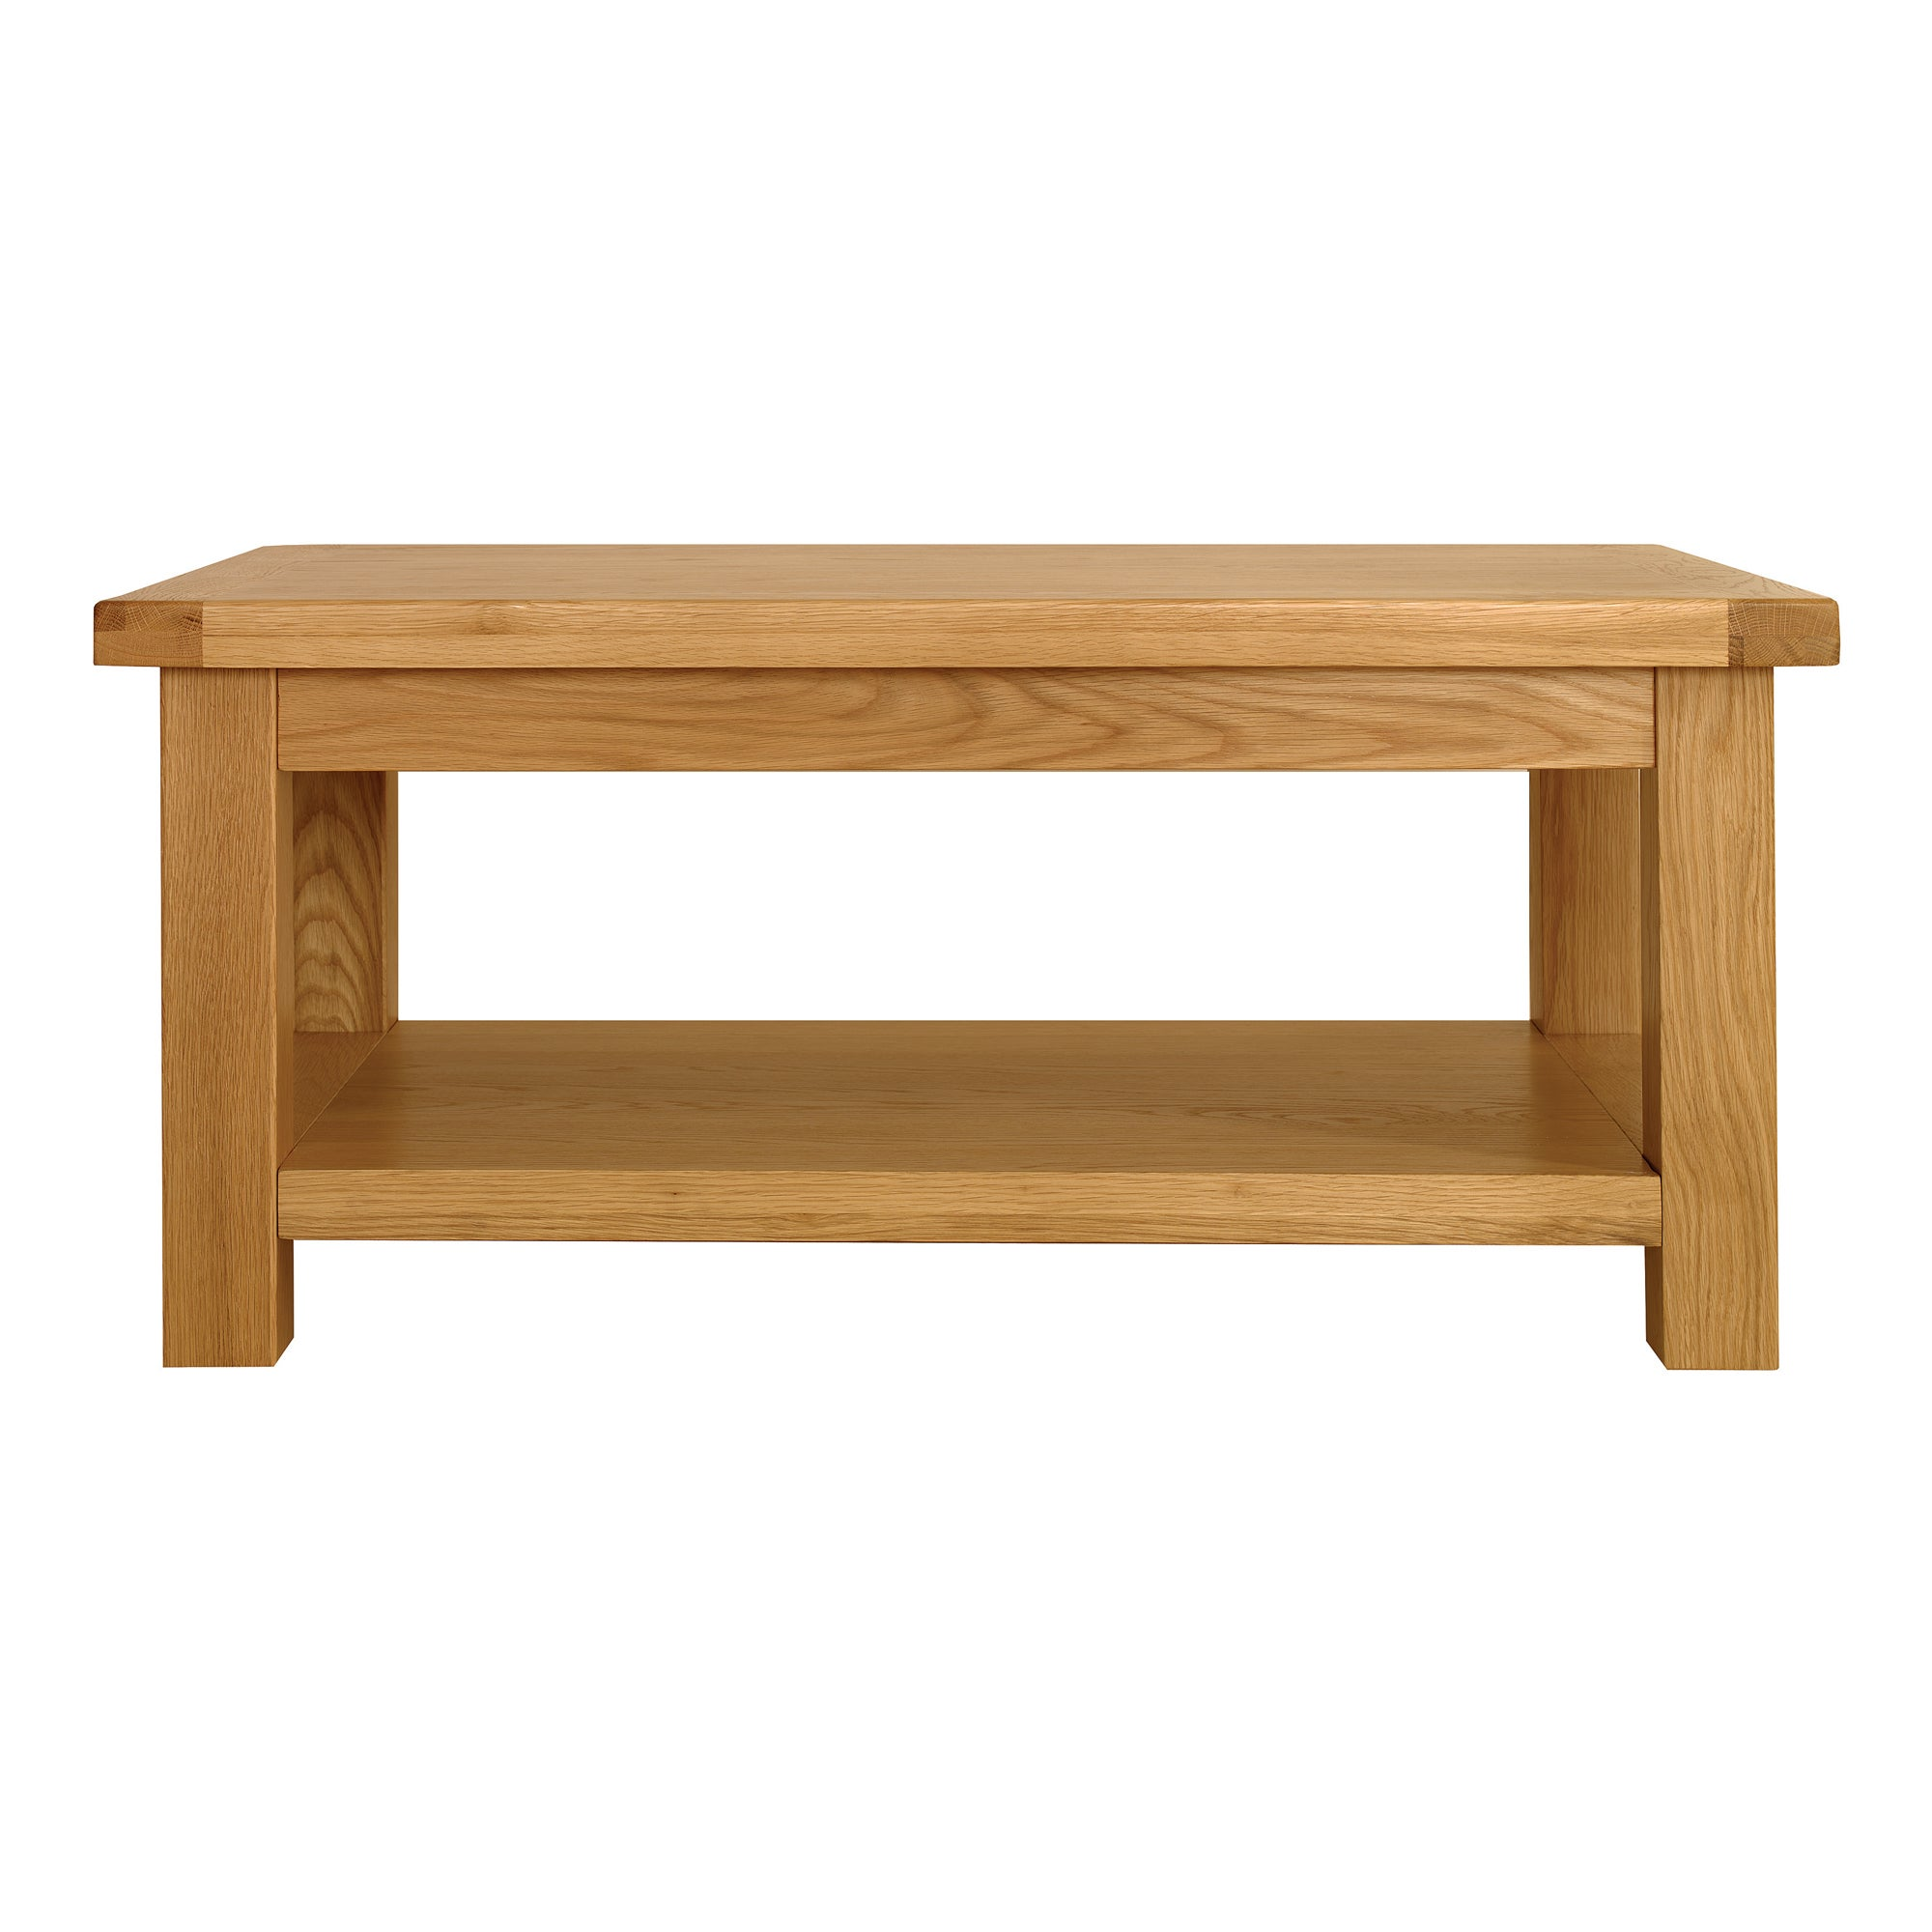 Harrogate Oak Large Coffee Table